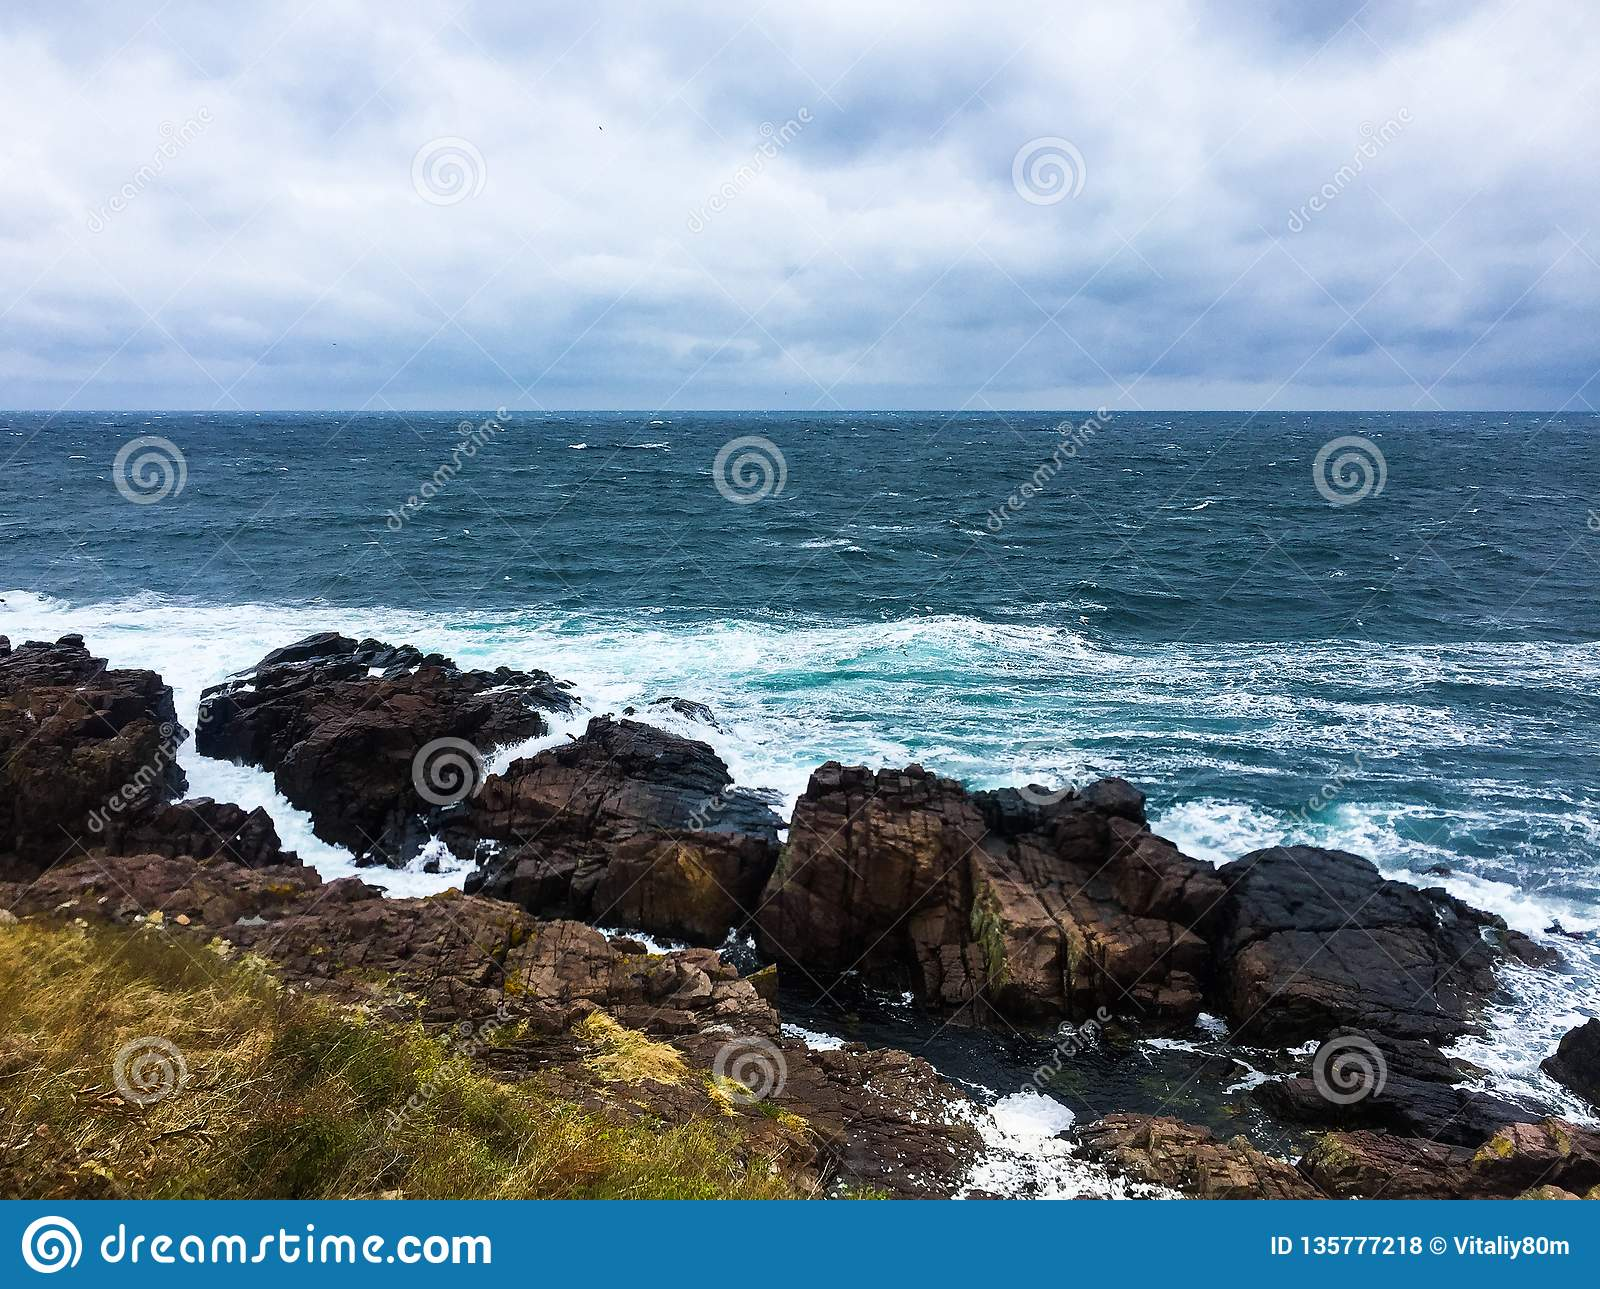 Rocky seashore. Cloudy windy weather.